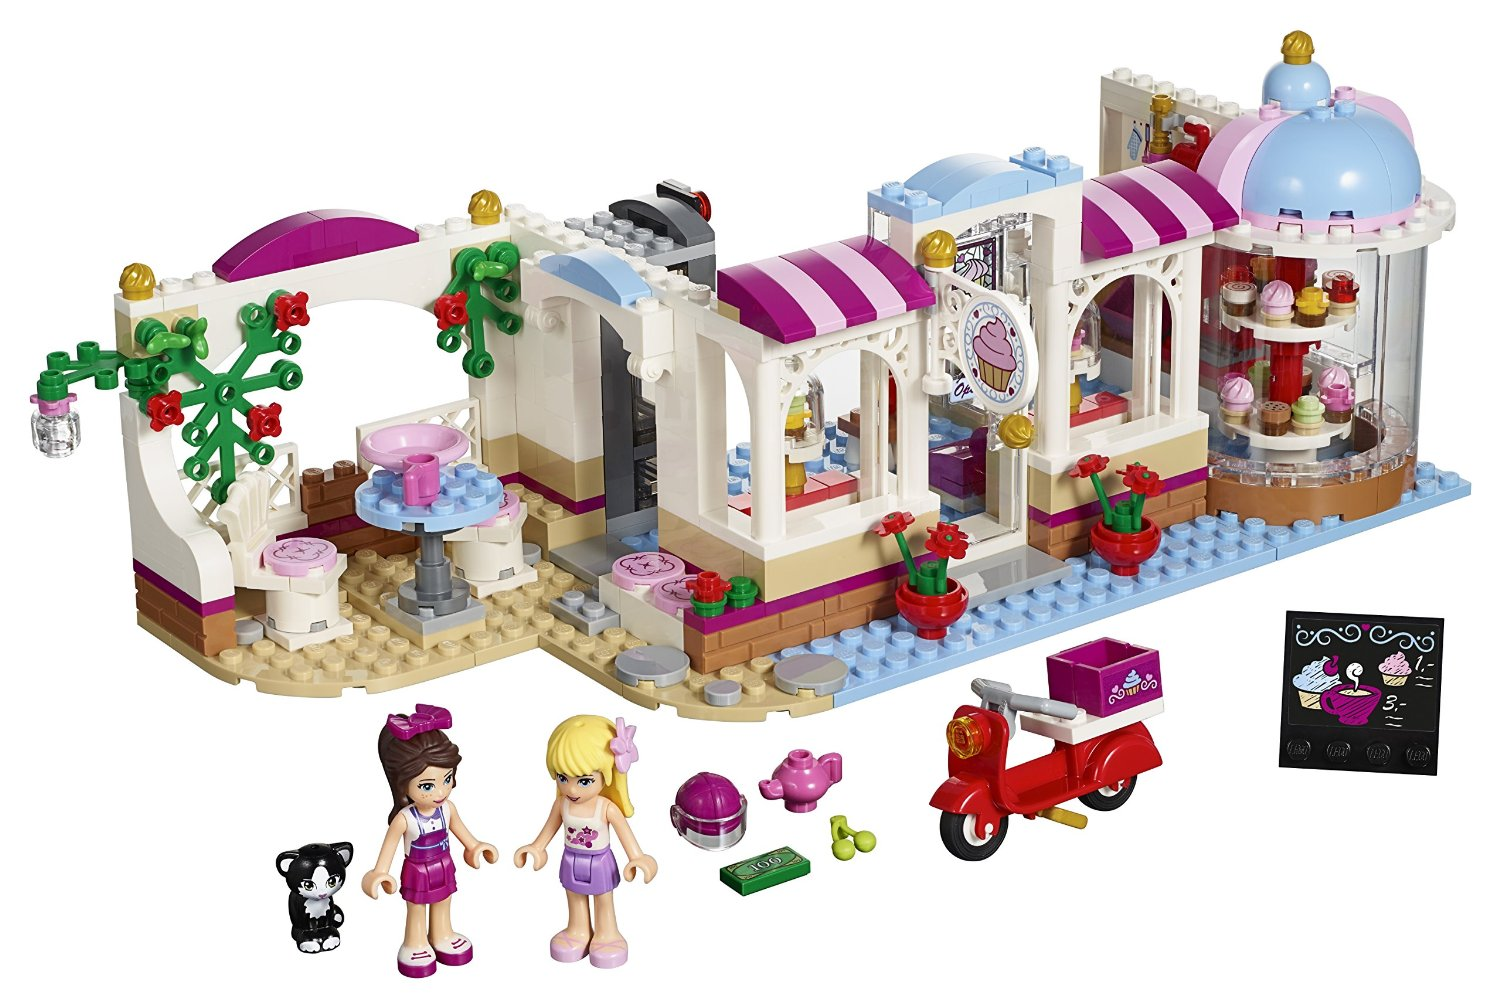 Toys R Us Legos For Girls : Shopping for lego friends heartlake cupcake cafe building kit